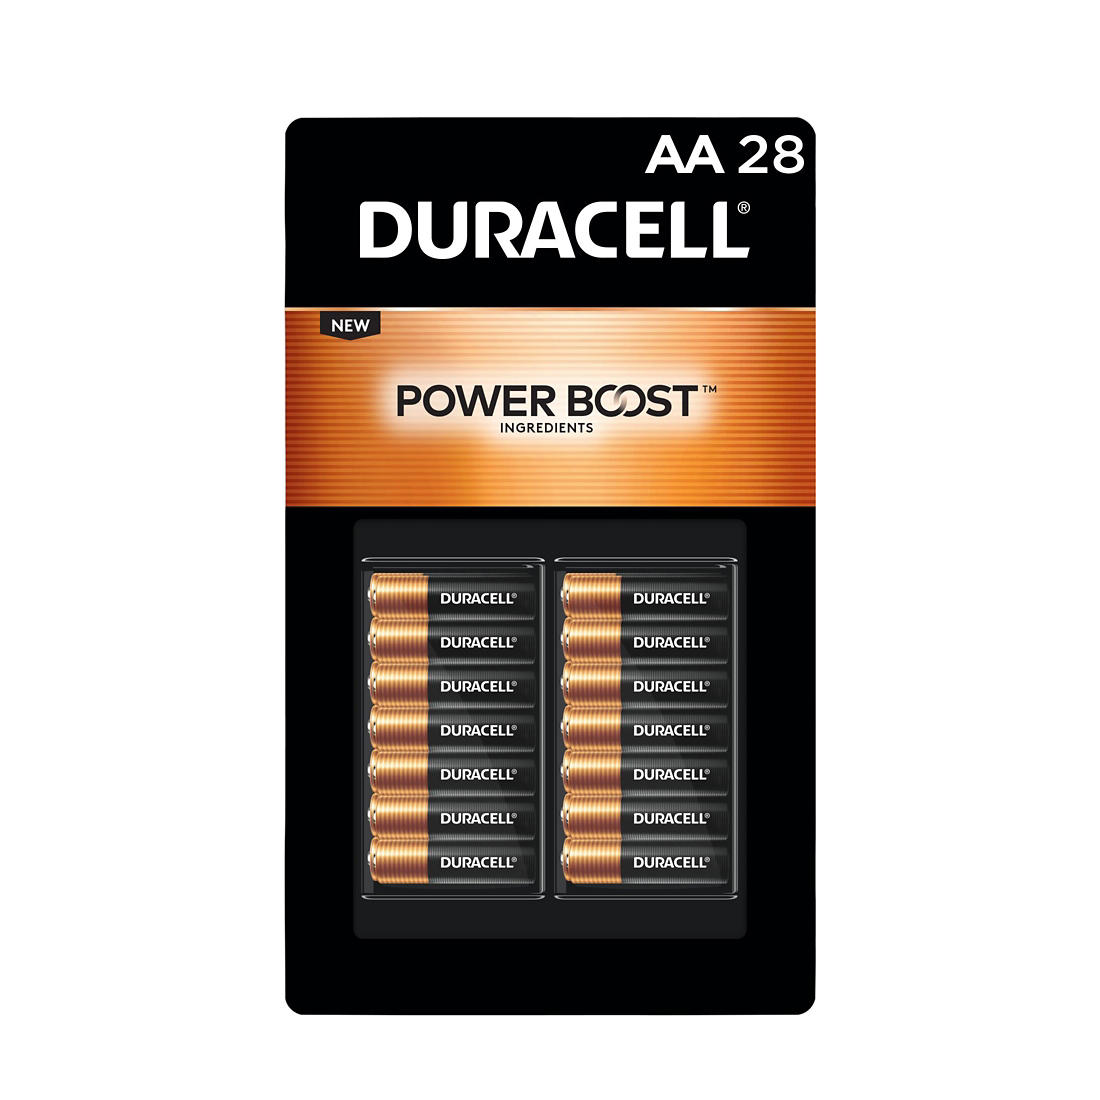 photograph relating to Duracell Battery Coupons Printable known as Duracell CopperTop AA Batteries, 28 ct.